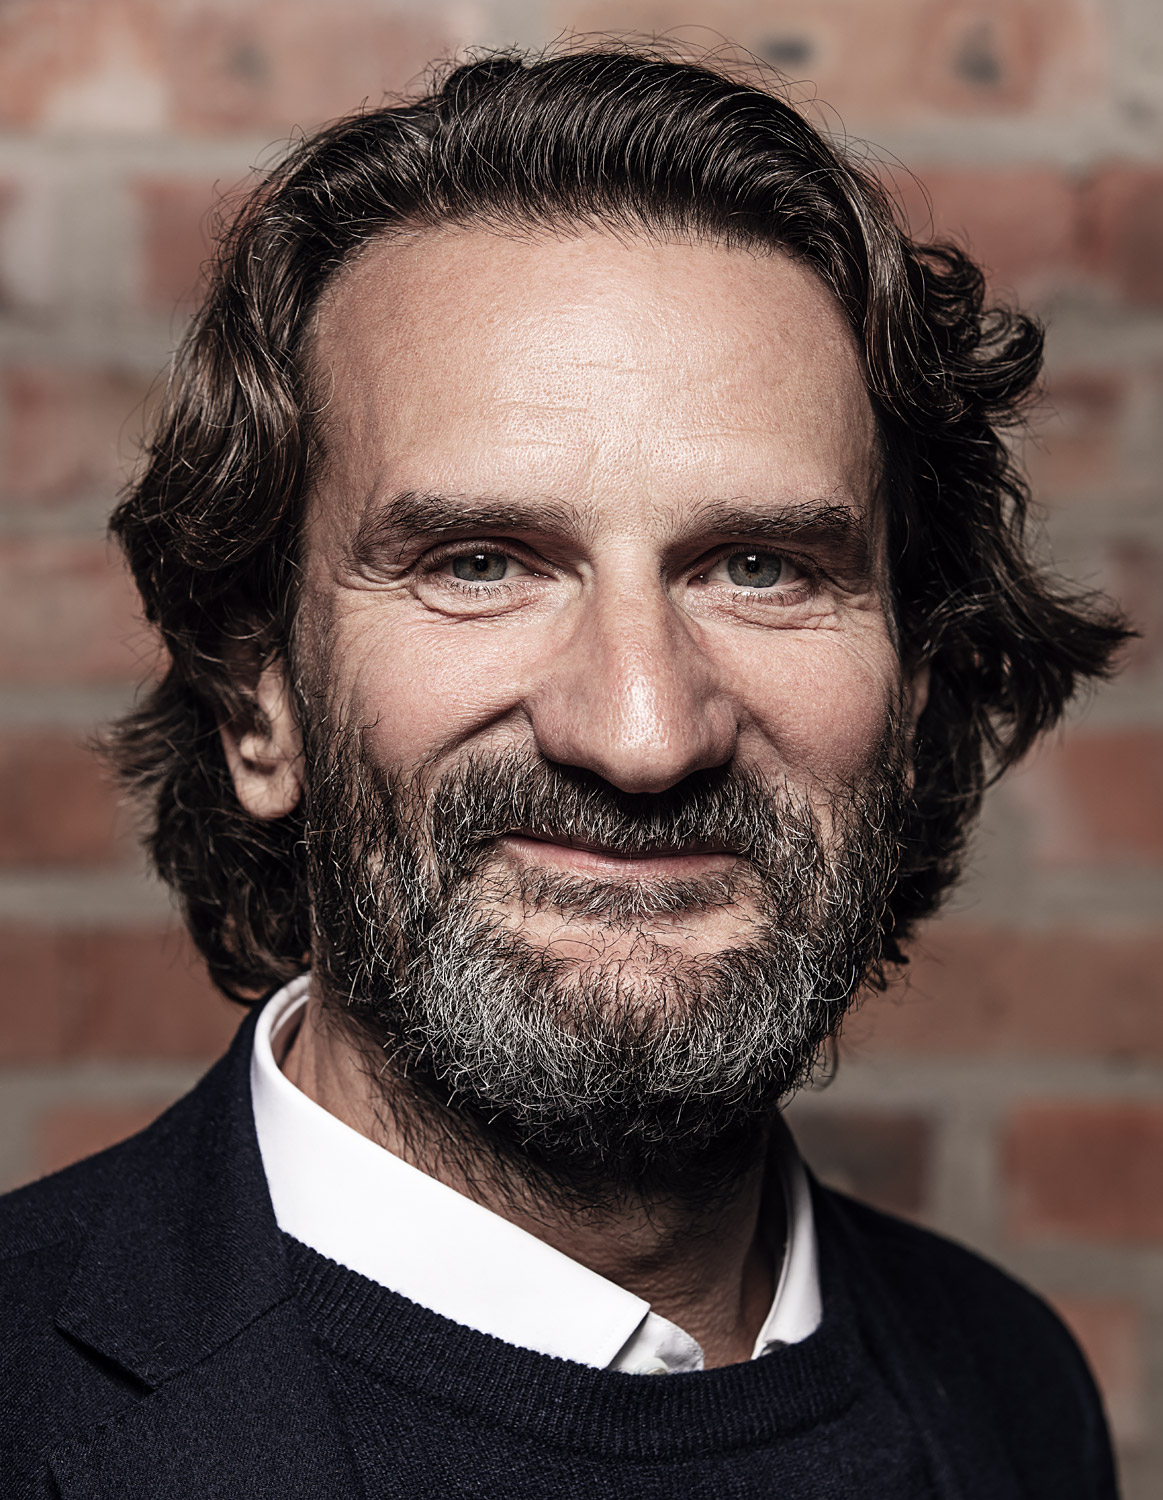 Frédéric Beigbeder a French writer, literary critic and television presenter